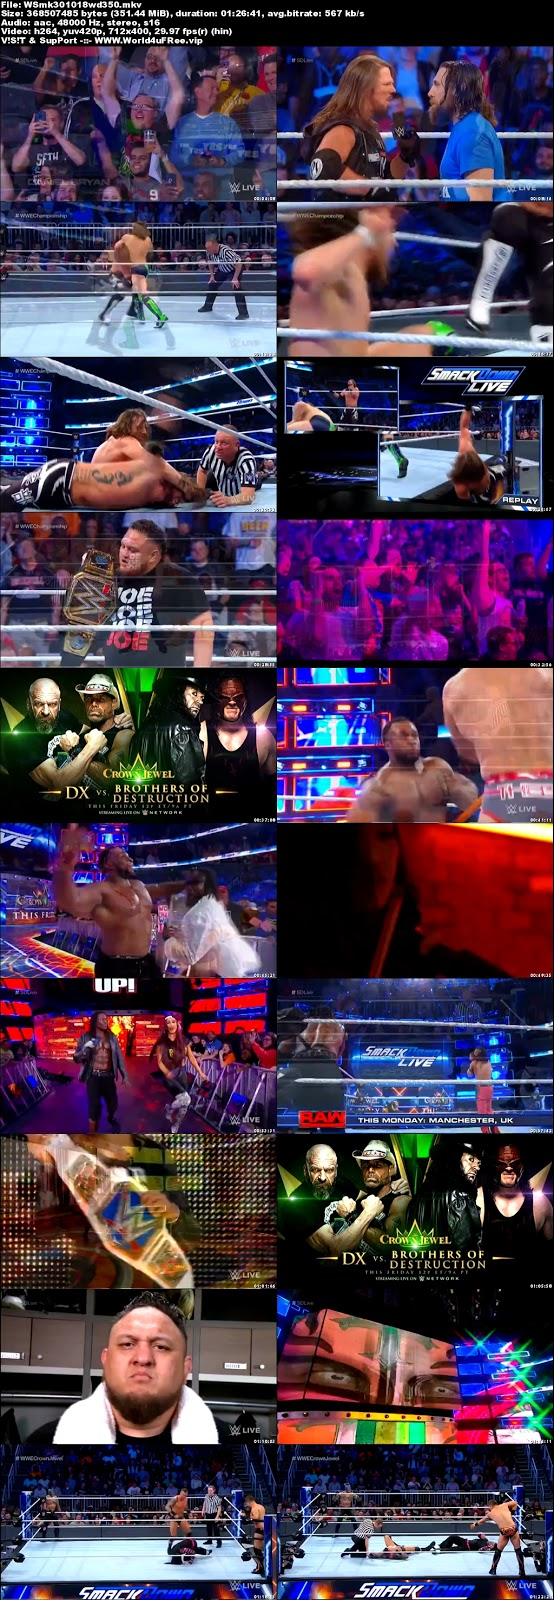 WWE Smackdown Live 30 OCTOBER 2018 HDTV 480p 350MB x264 tv show wweWWE Smackdown Live 30 OCTOBER 2018 HDTV 480p 300MB x264 compressed small size free download or watch online at world4ufree.fun